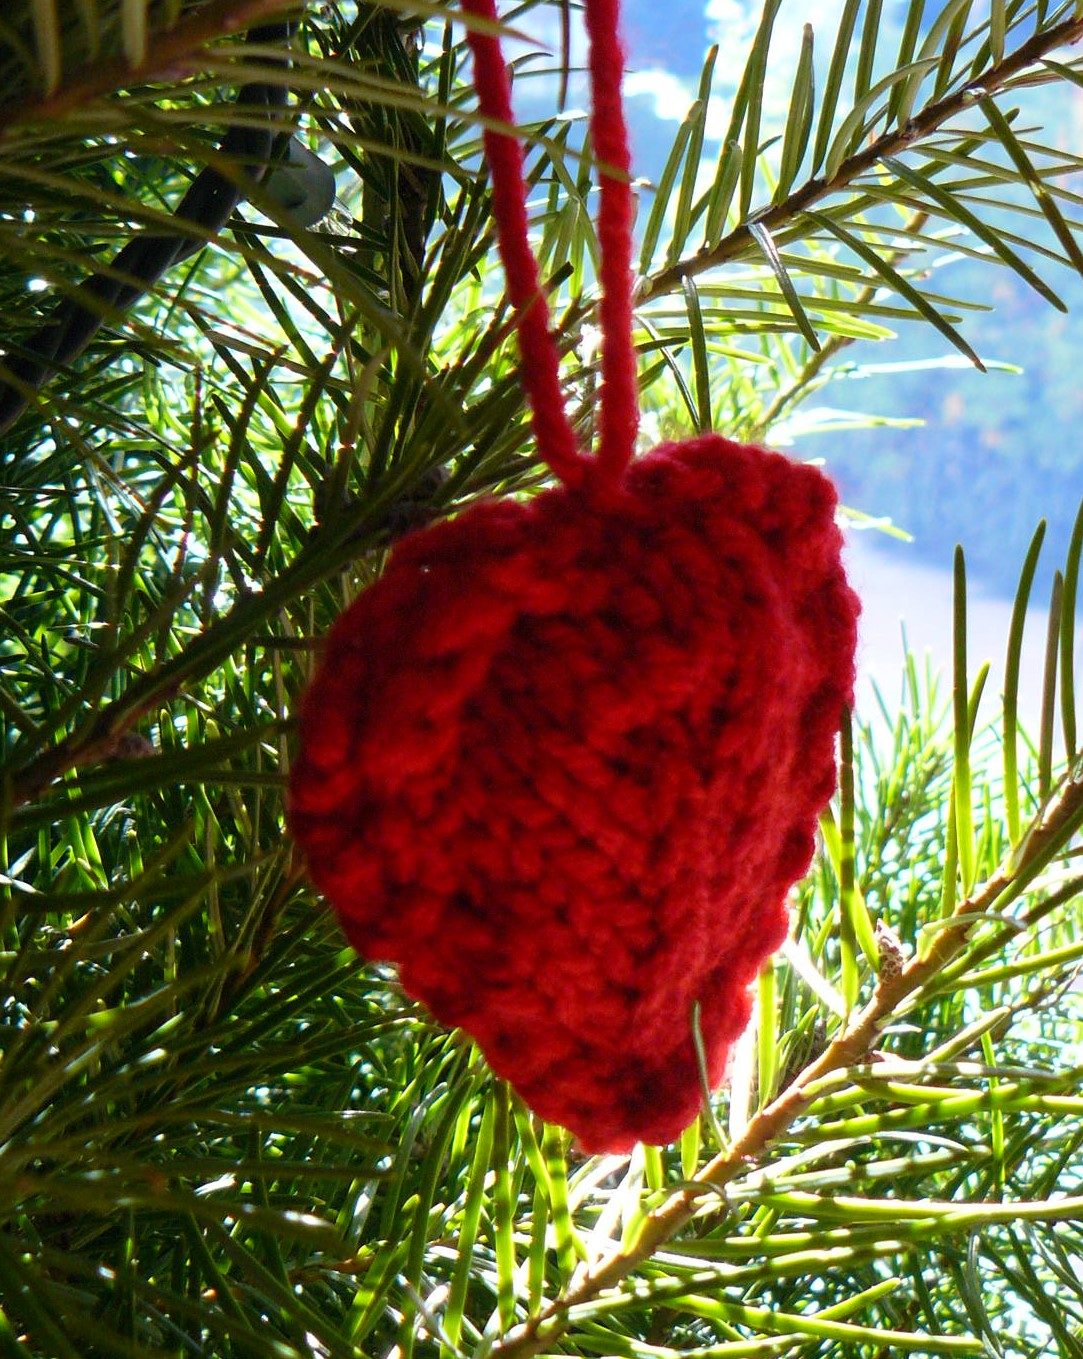 knitted heart hanging on branch